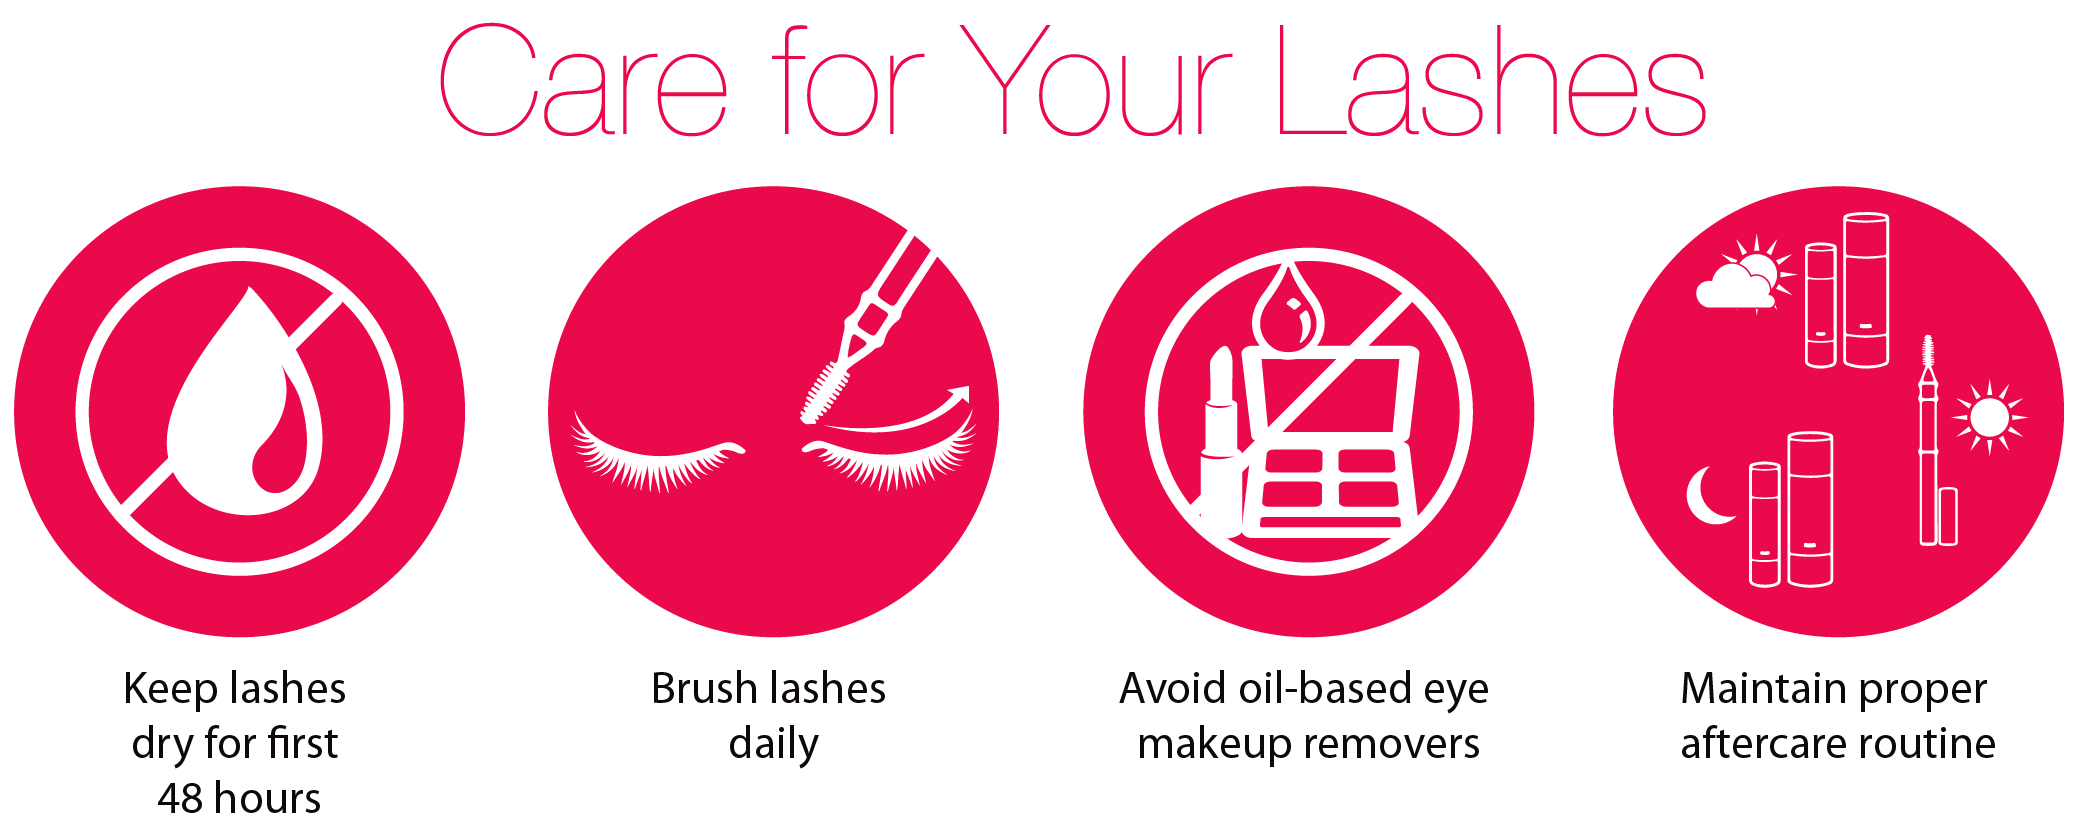 care for your lashes